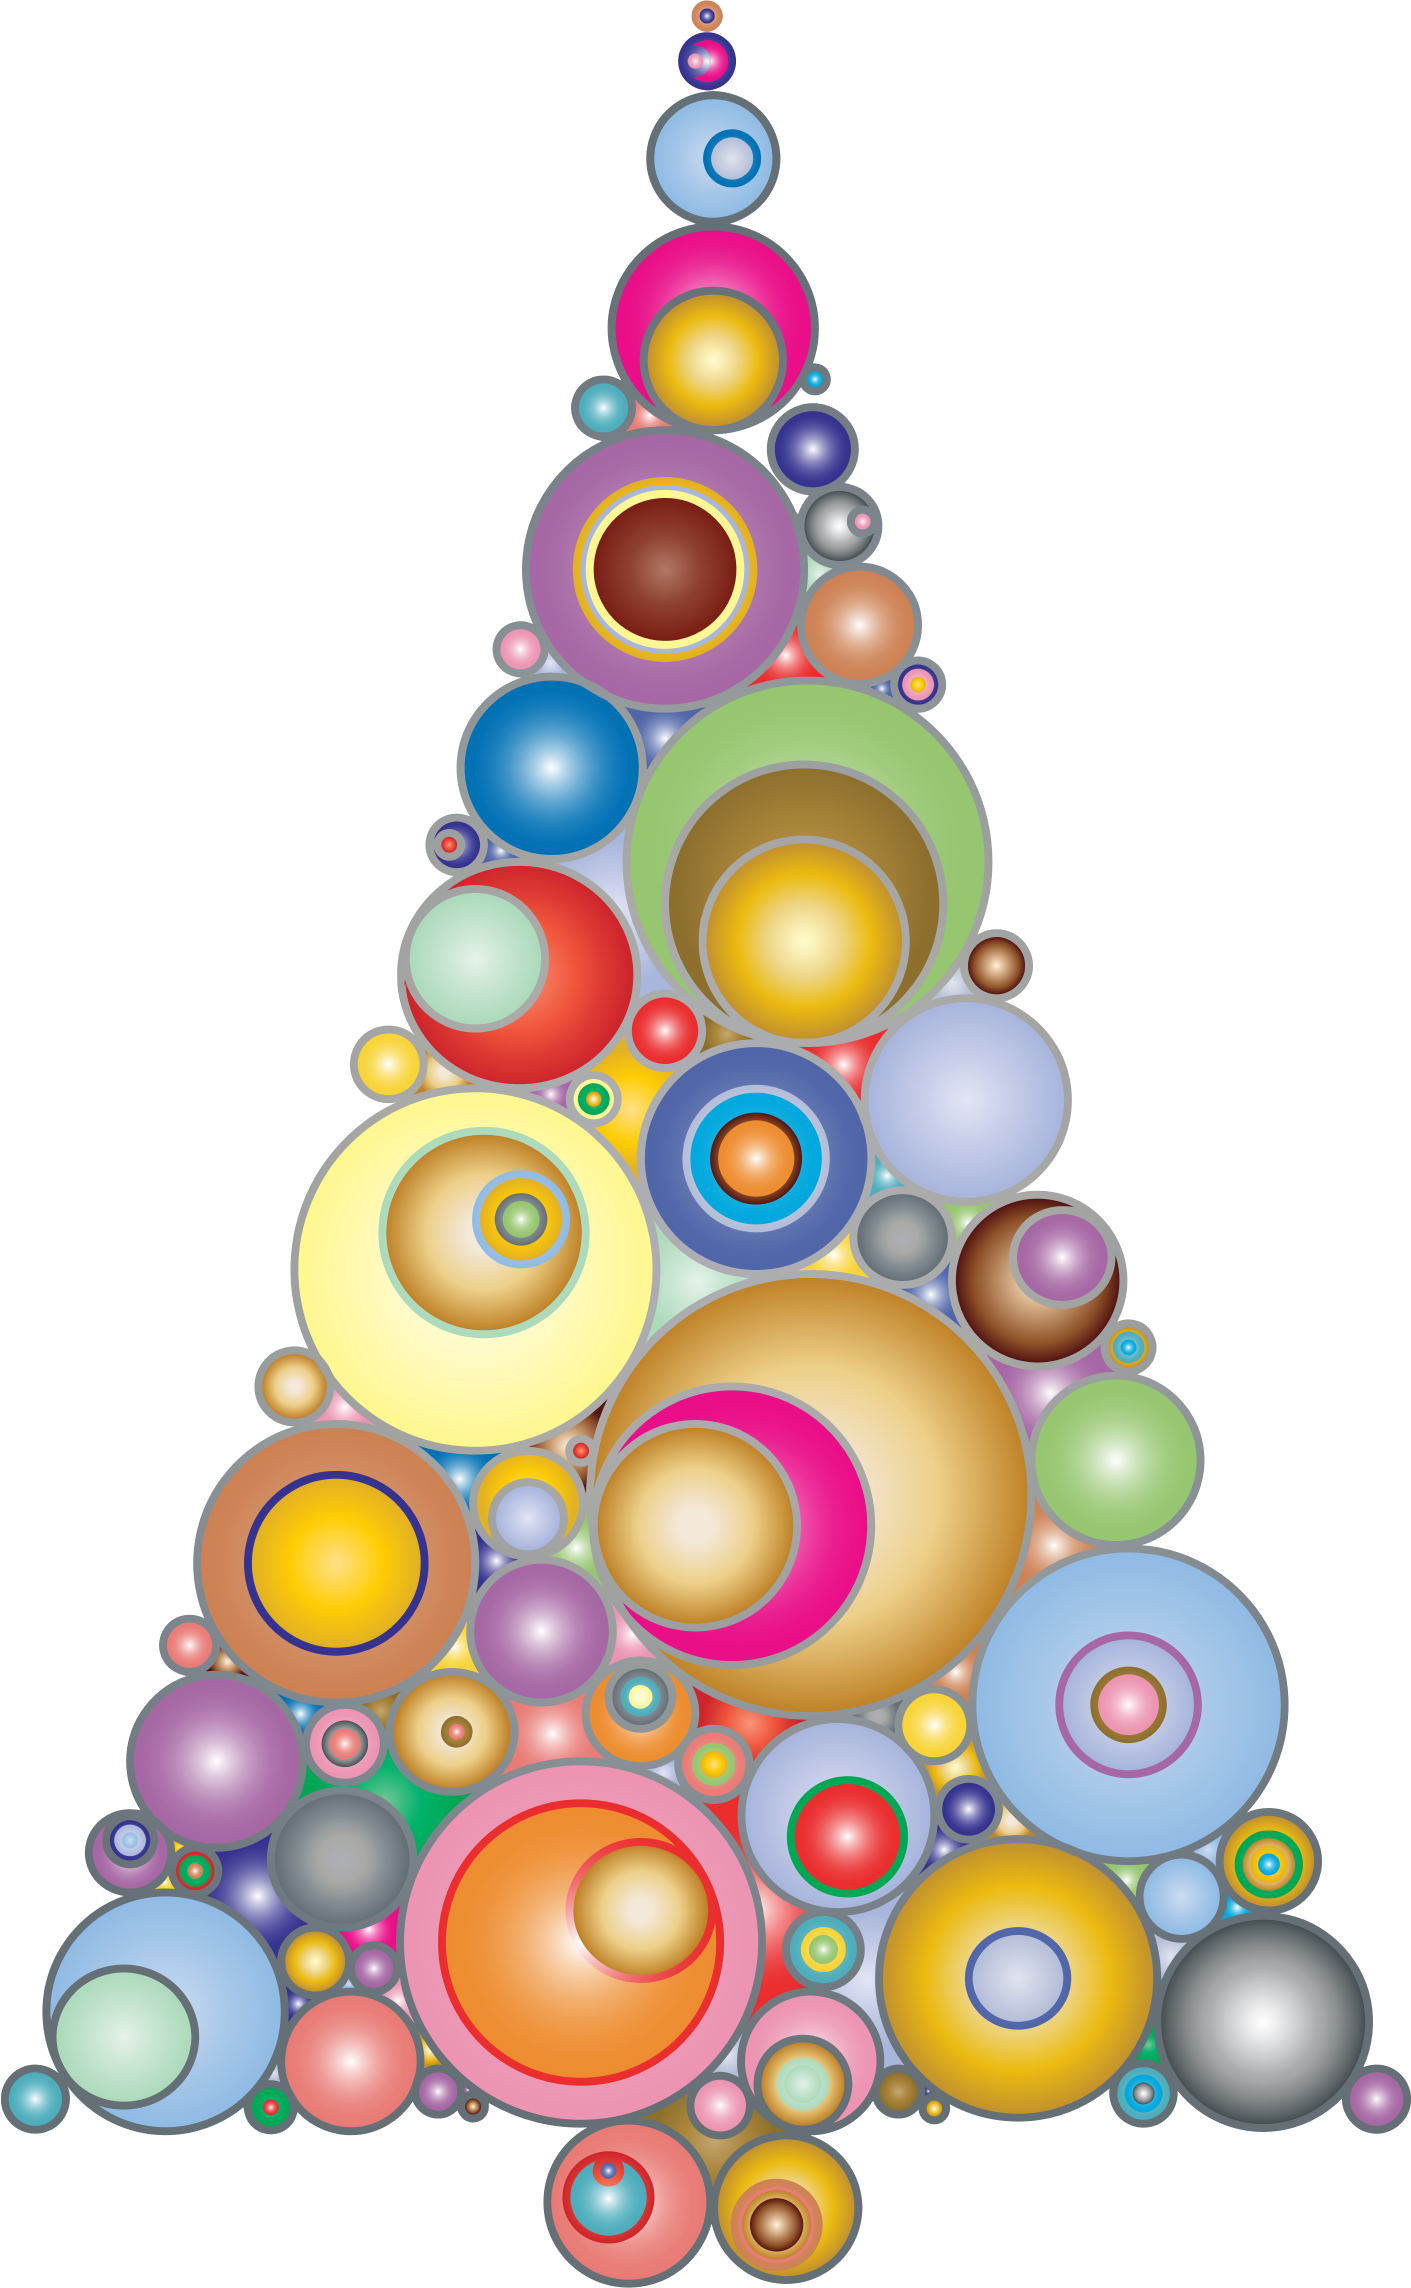 Colorful Abstract Circles Christmas Tree 3 by GDJ